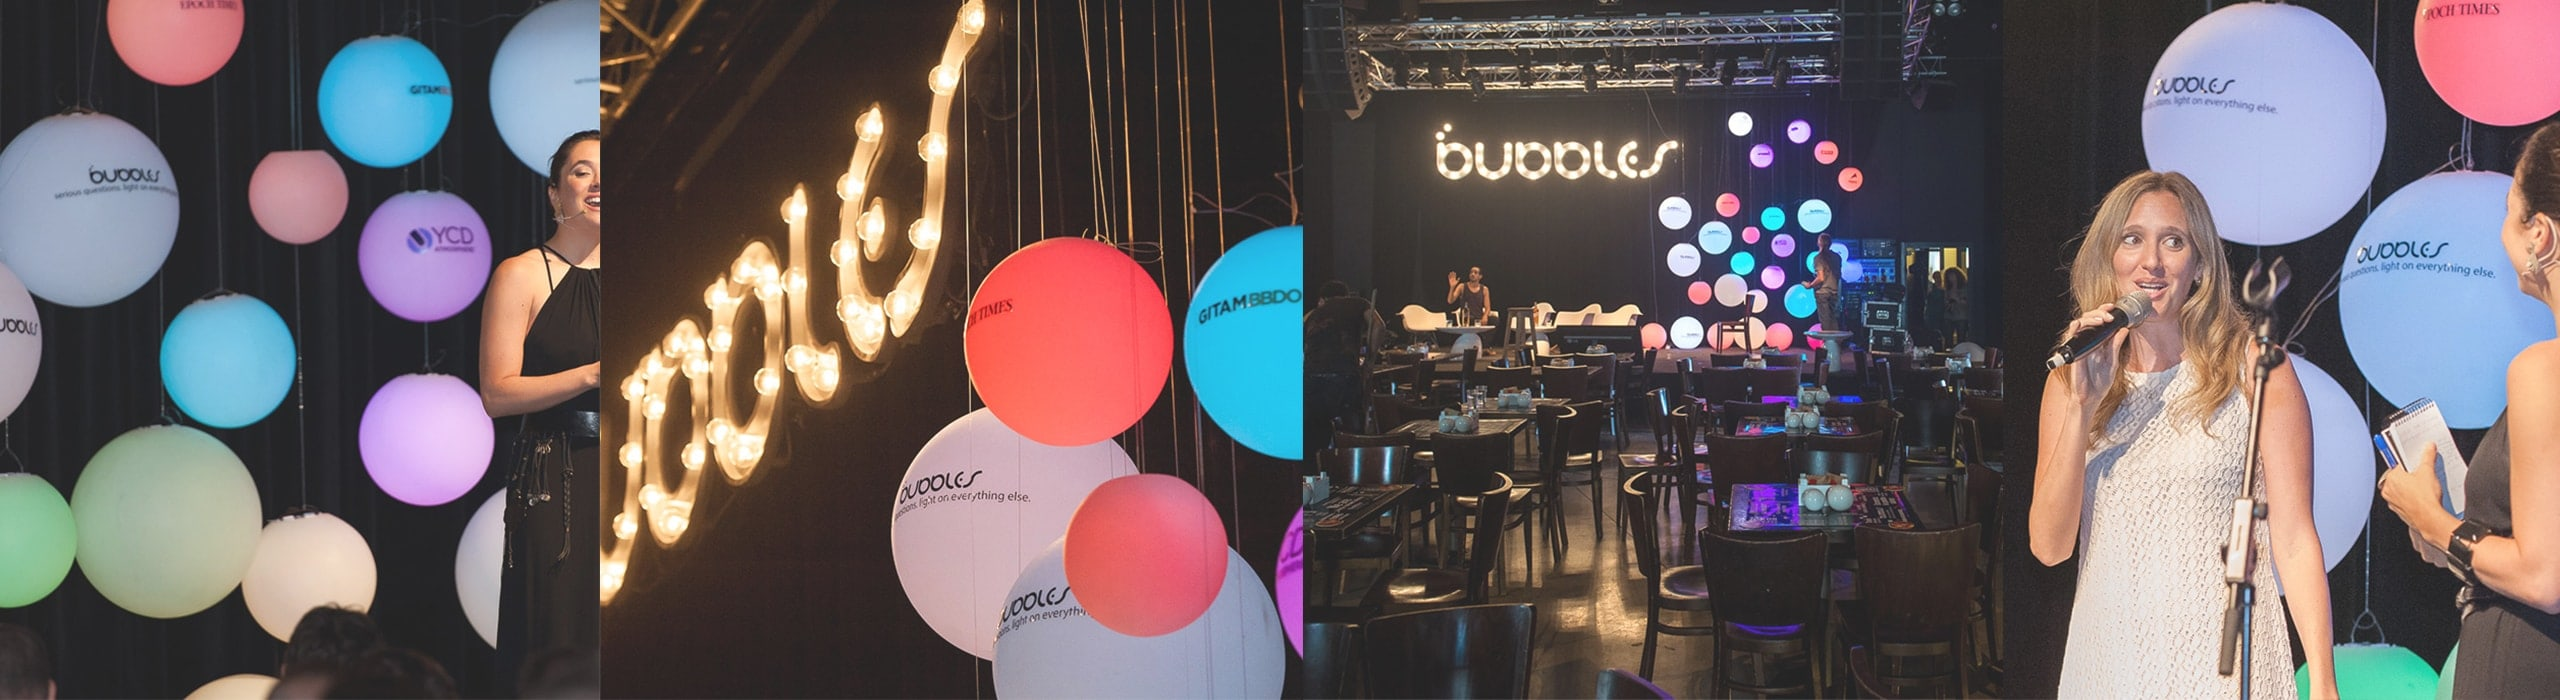 Bubbles - natie-bubbles-conference-photos-01 - Natie Branding Agency